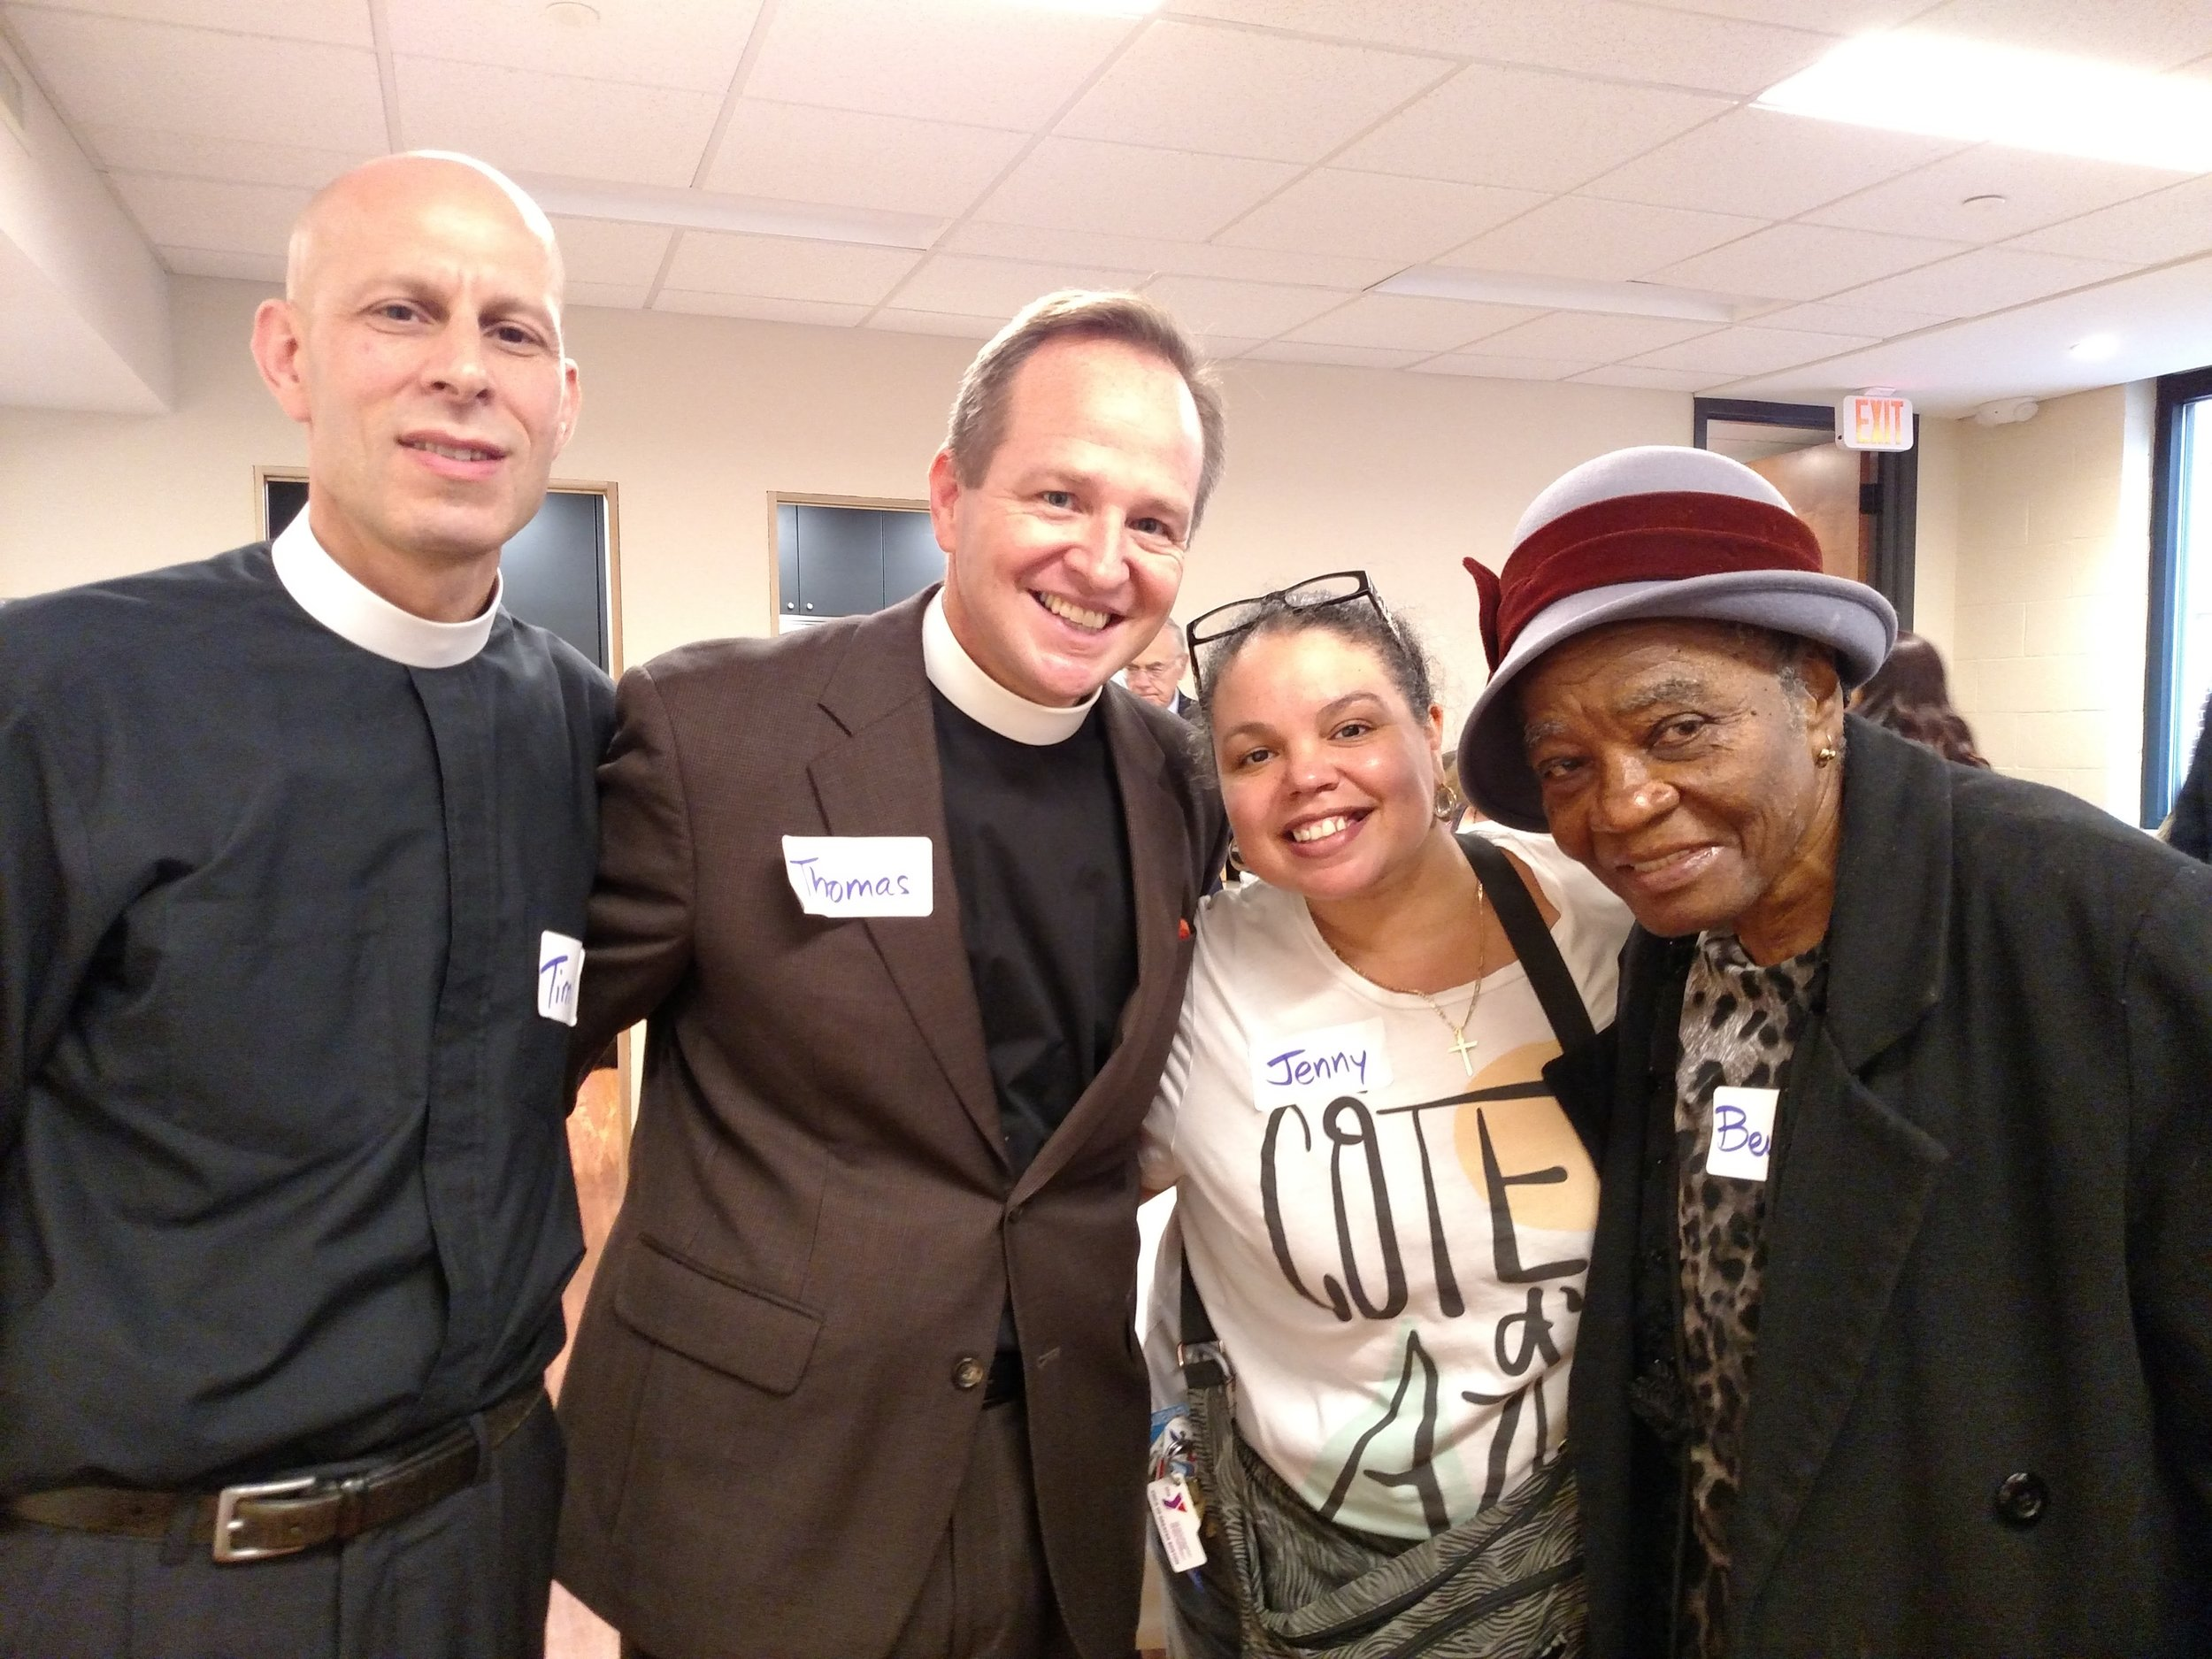 Rev. Tim Crellin, Rev. Thomas Brown of Parish of the Epiphany, and Jenny Gray and Beulah Roach, longtime parishioners of St. Stephen's.